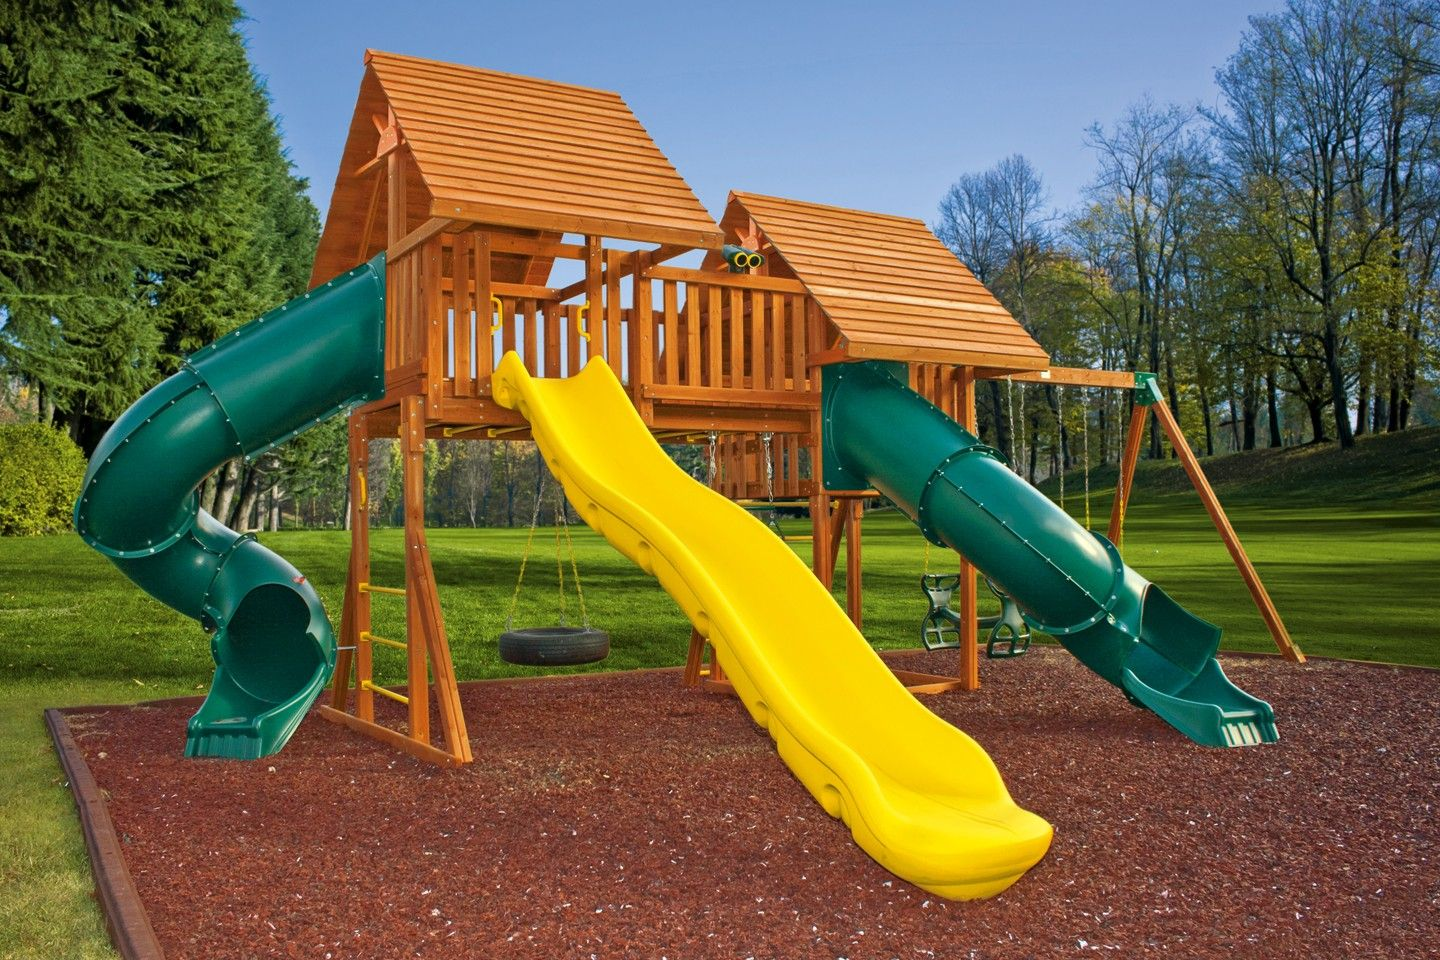 fantasy 7 wooden playset jungle gym backyard playground and